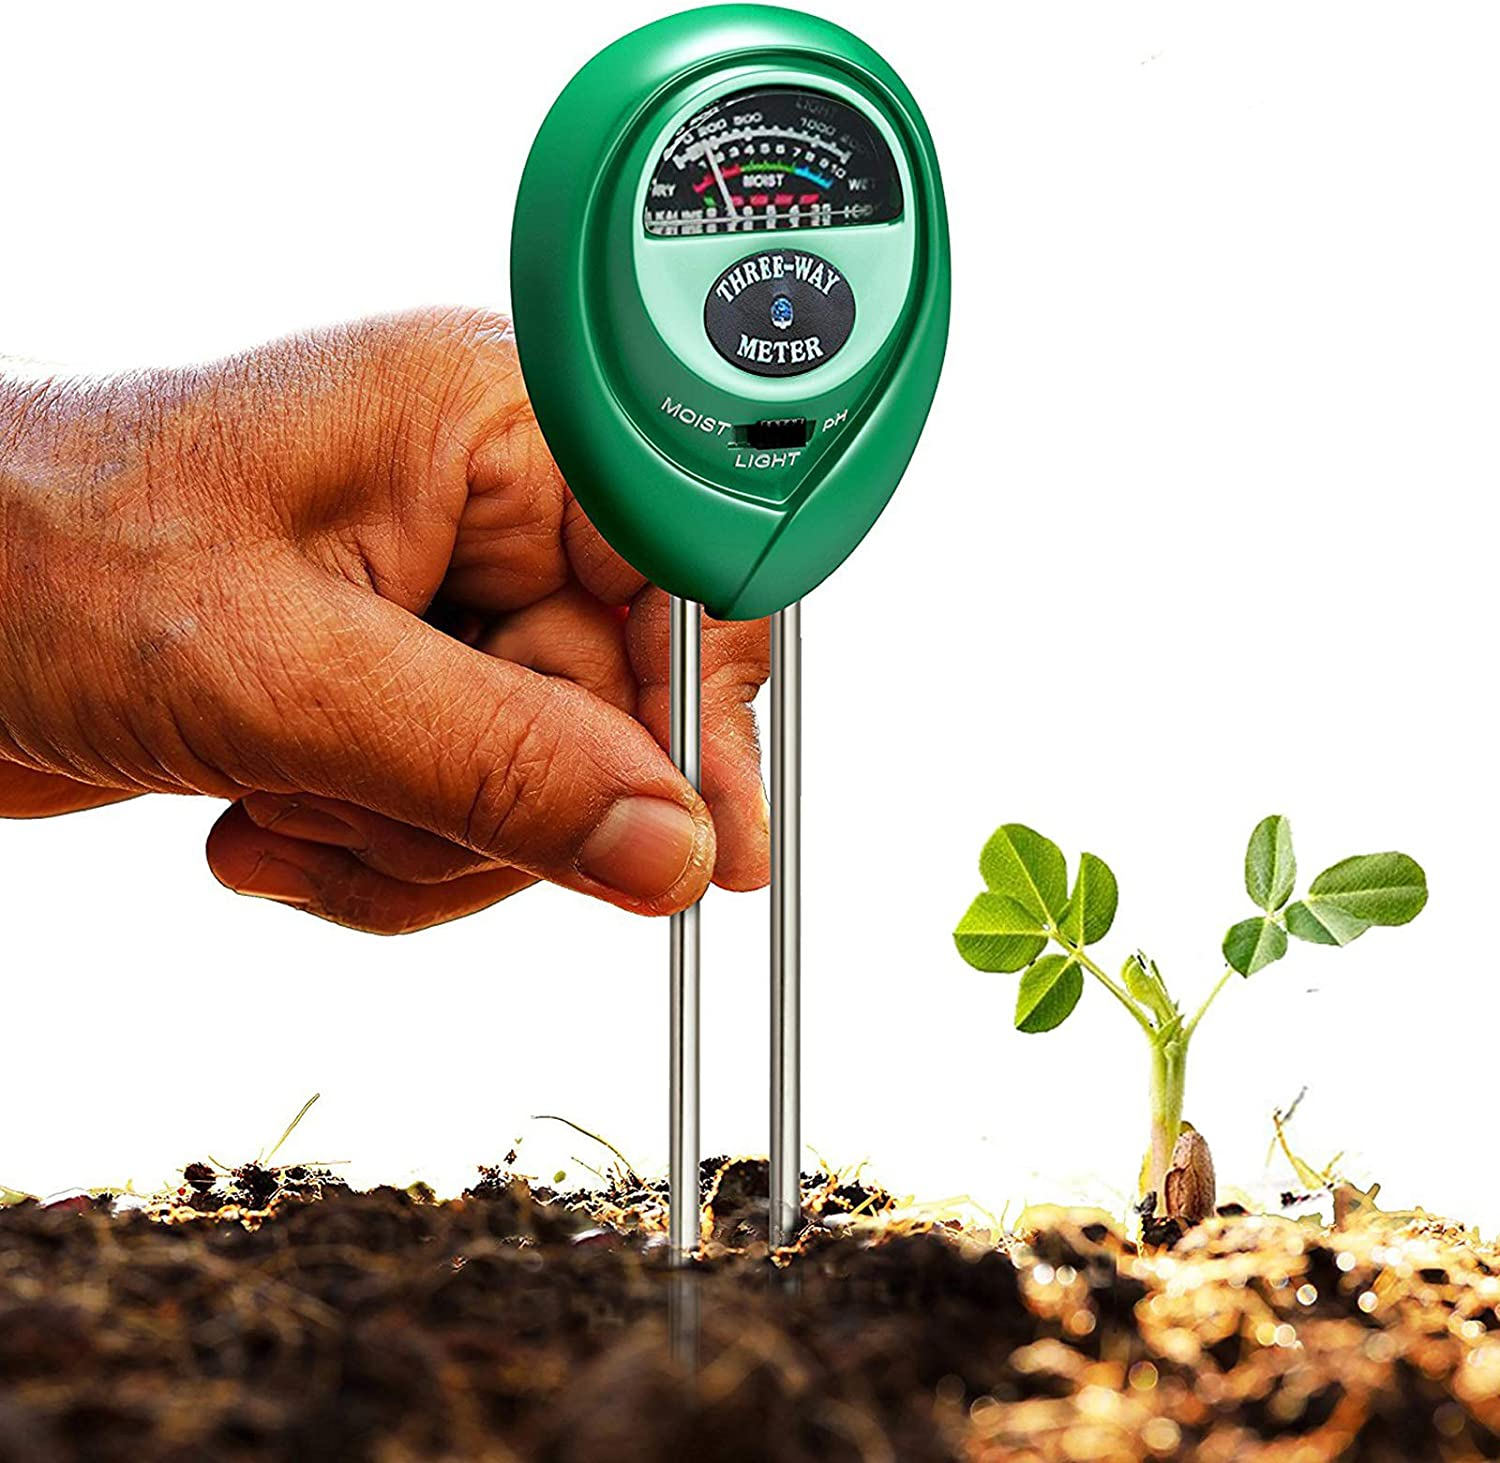 Soil Tester, 3-in-1 Soil Moisture/Light/pH Meter, Gardening Lawn Farm Test Kit Tool, Digital Plant Thermometer Probe, Water Hydrometer Sunlight Tester for Indoor Outdoor, No Battery Required (Round)